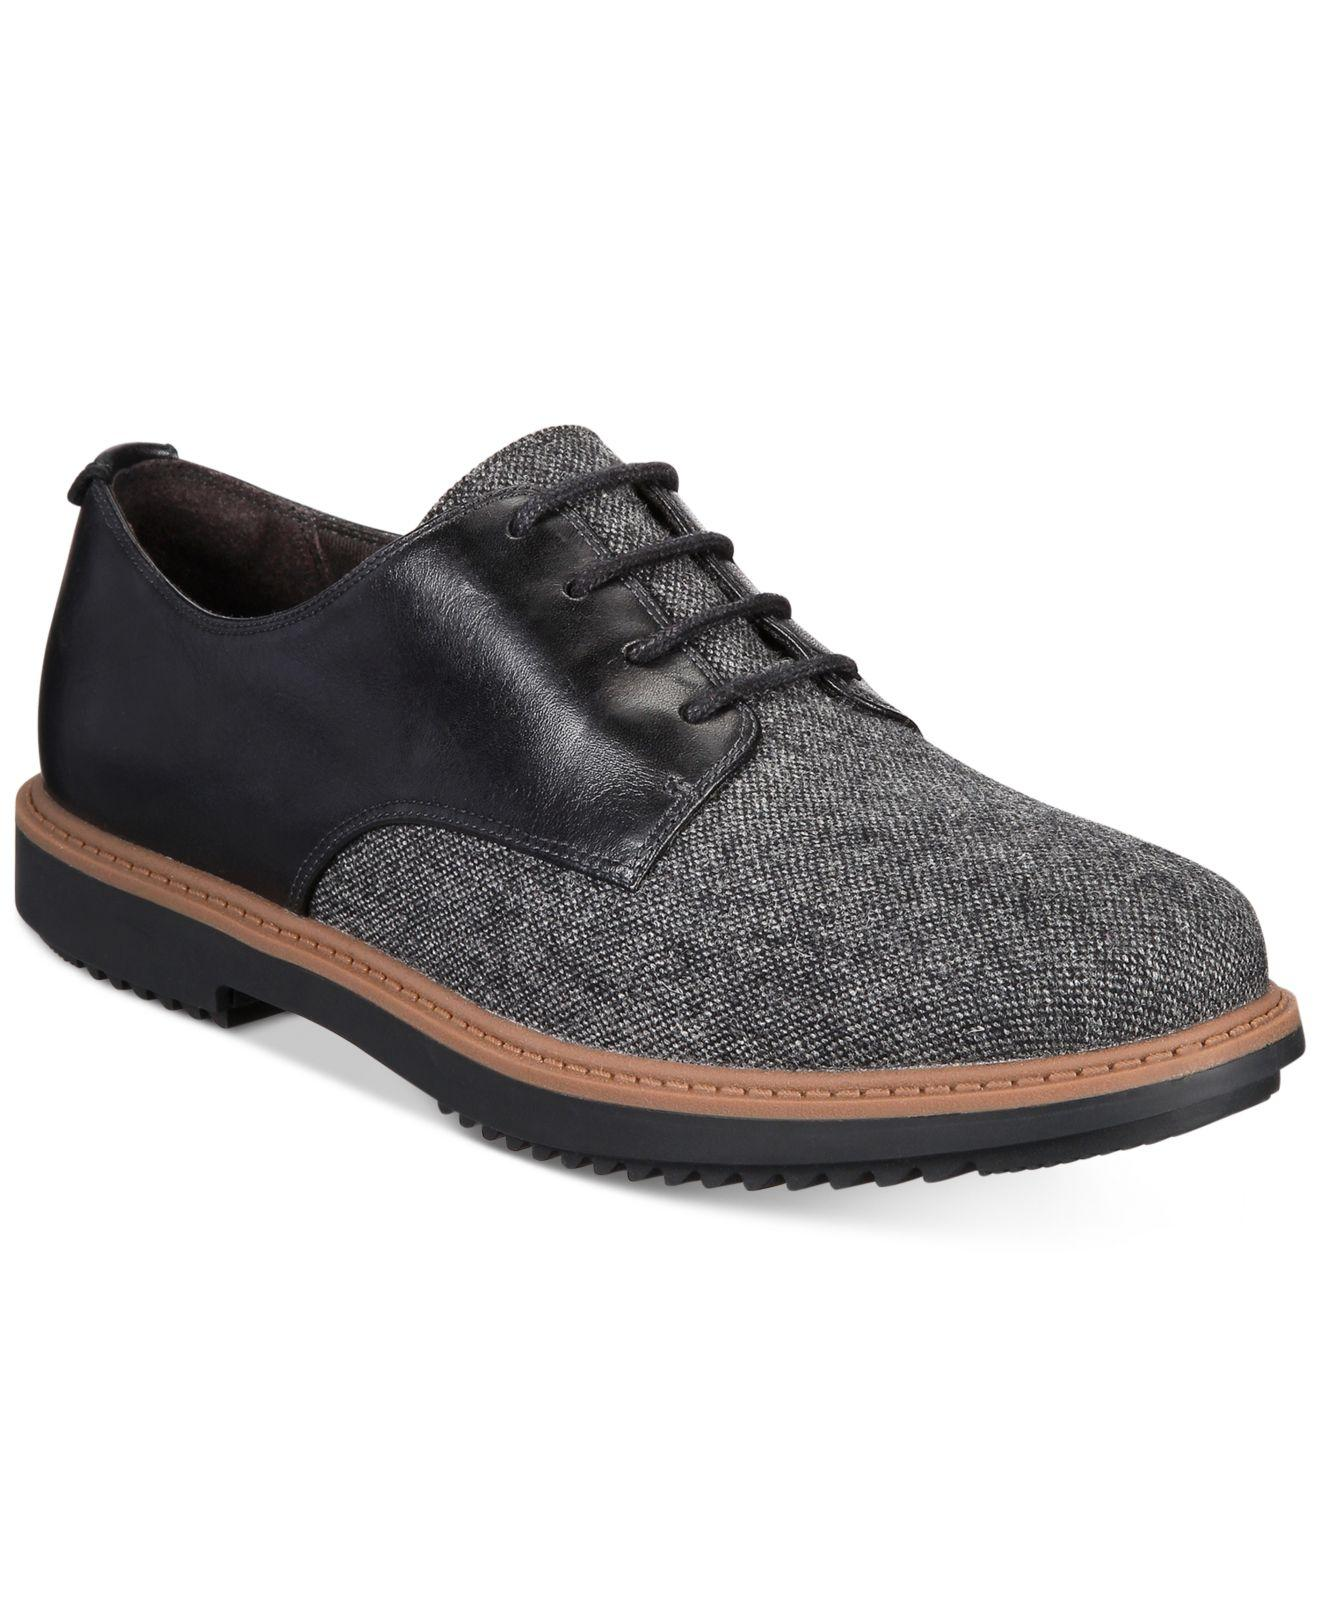 Clarks Collection Mens Shoes